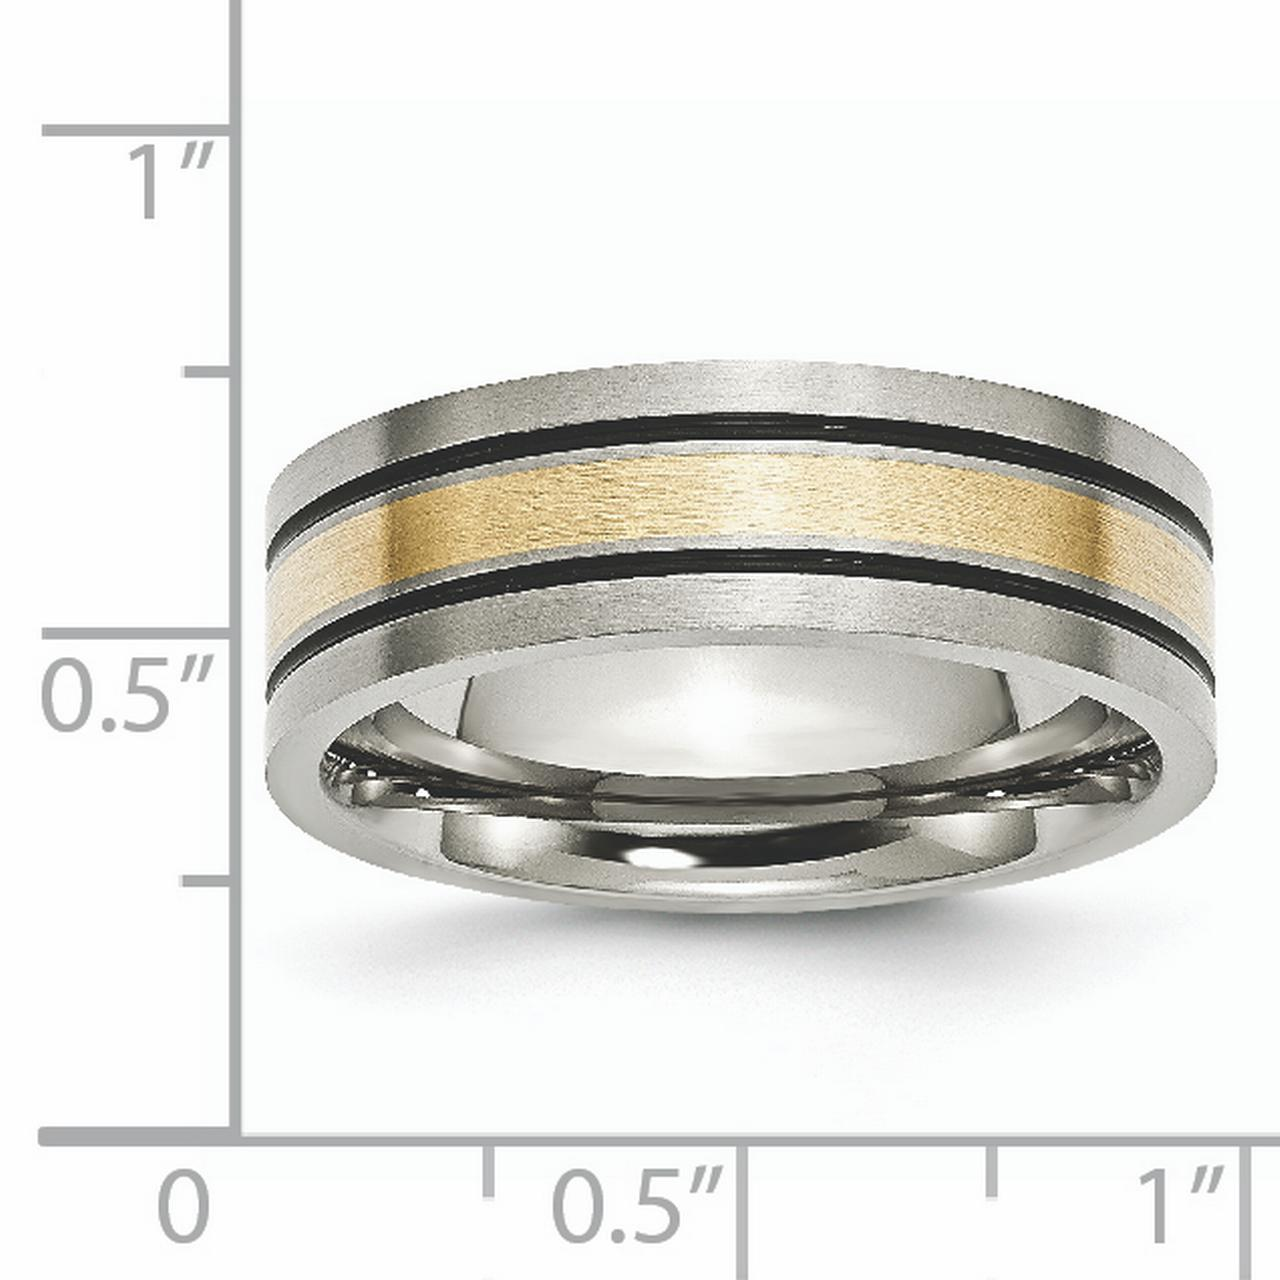 Titanium 14k Yellow Inlay Flat 7mm Brushed Wedding Ring Band Size 10.50 Precious Metal Fine Jewelry Gifts For Women For Her - image 5 of 6